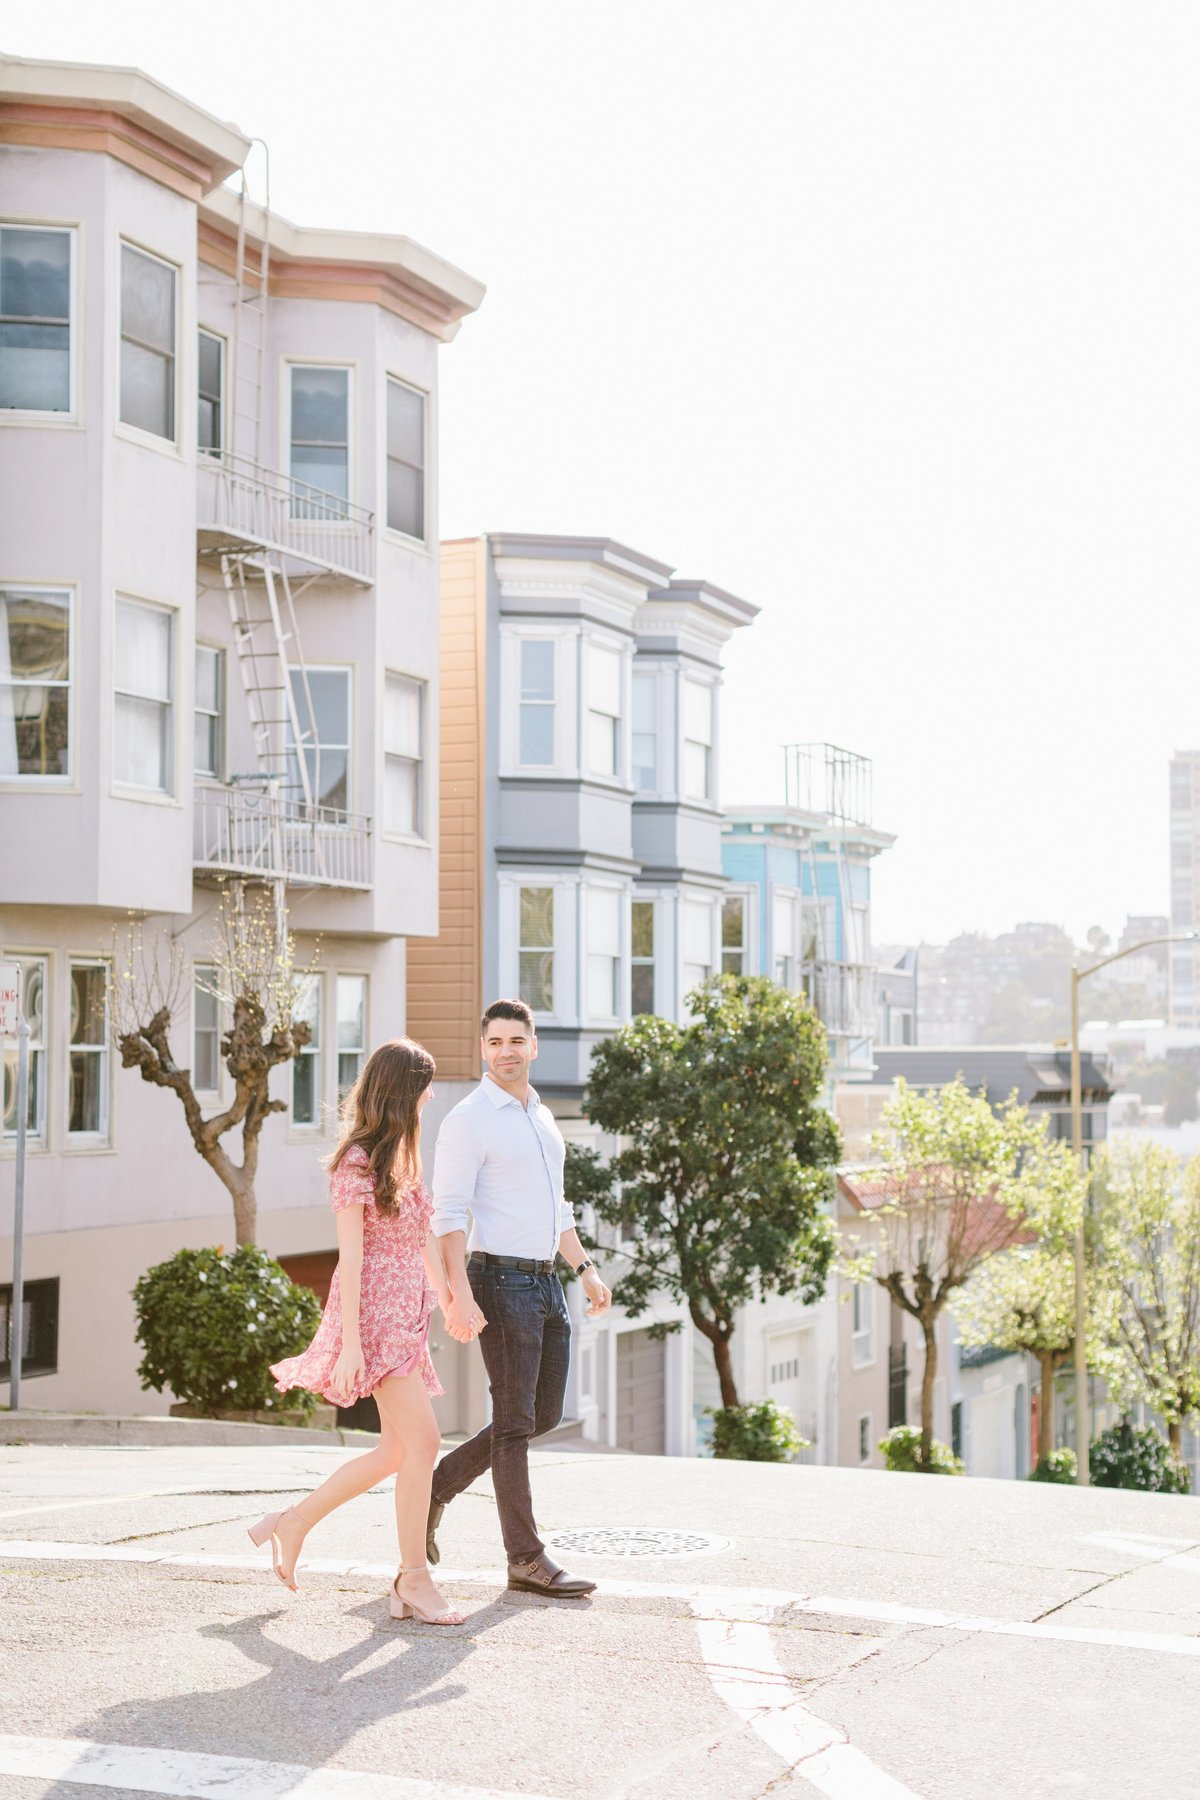 Best California Engagement Photographer-Jodee Debes Photography-76